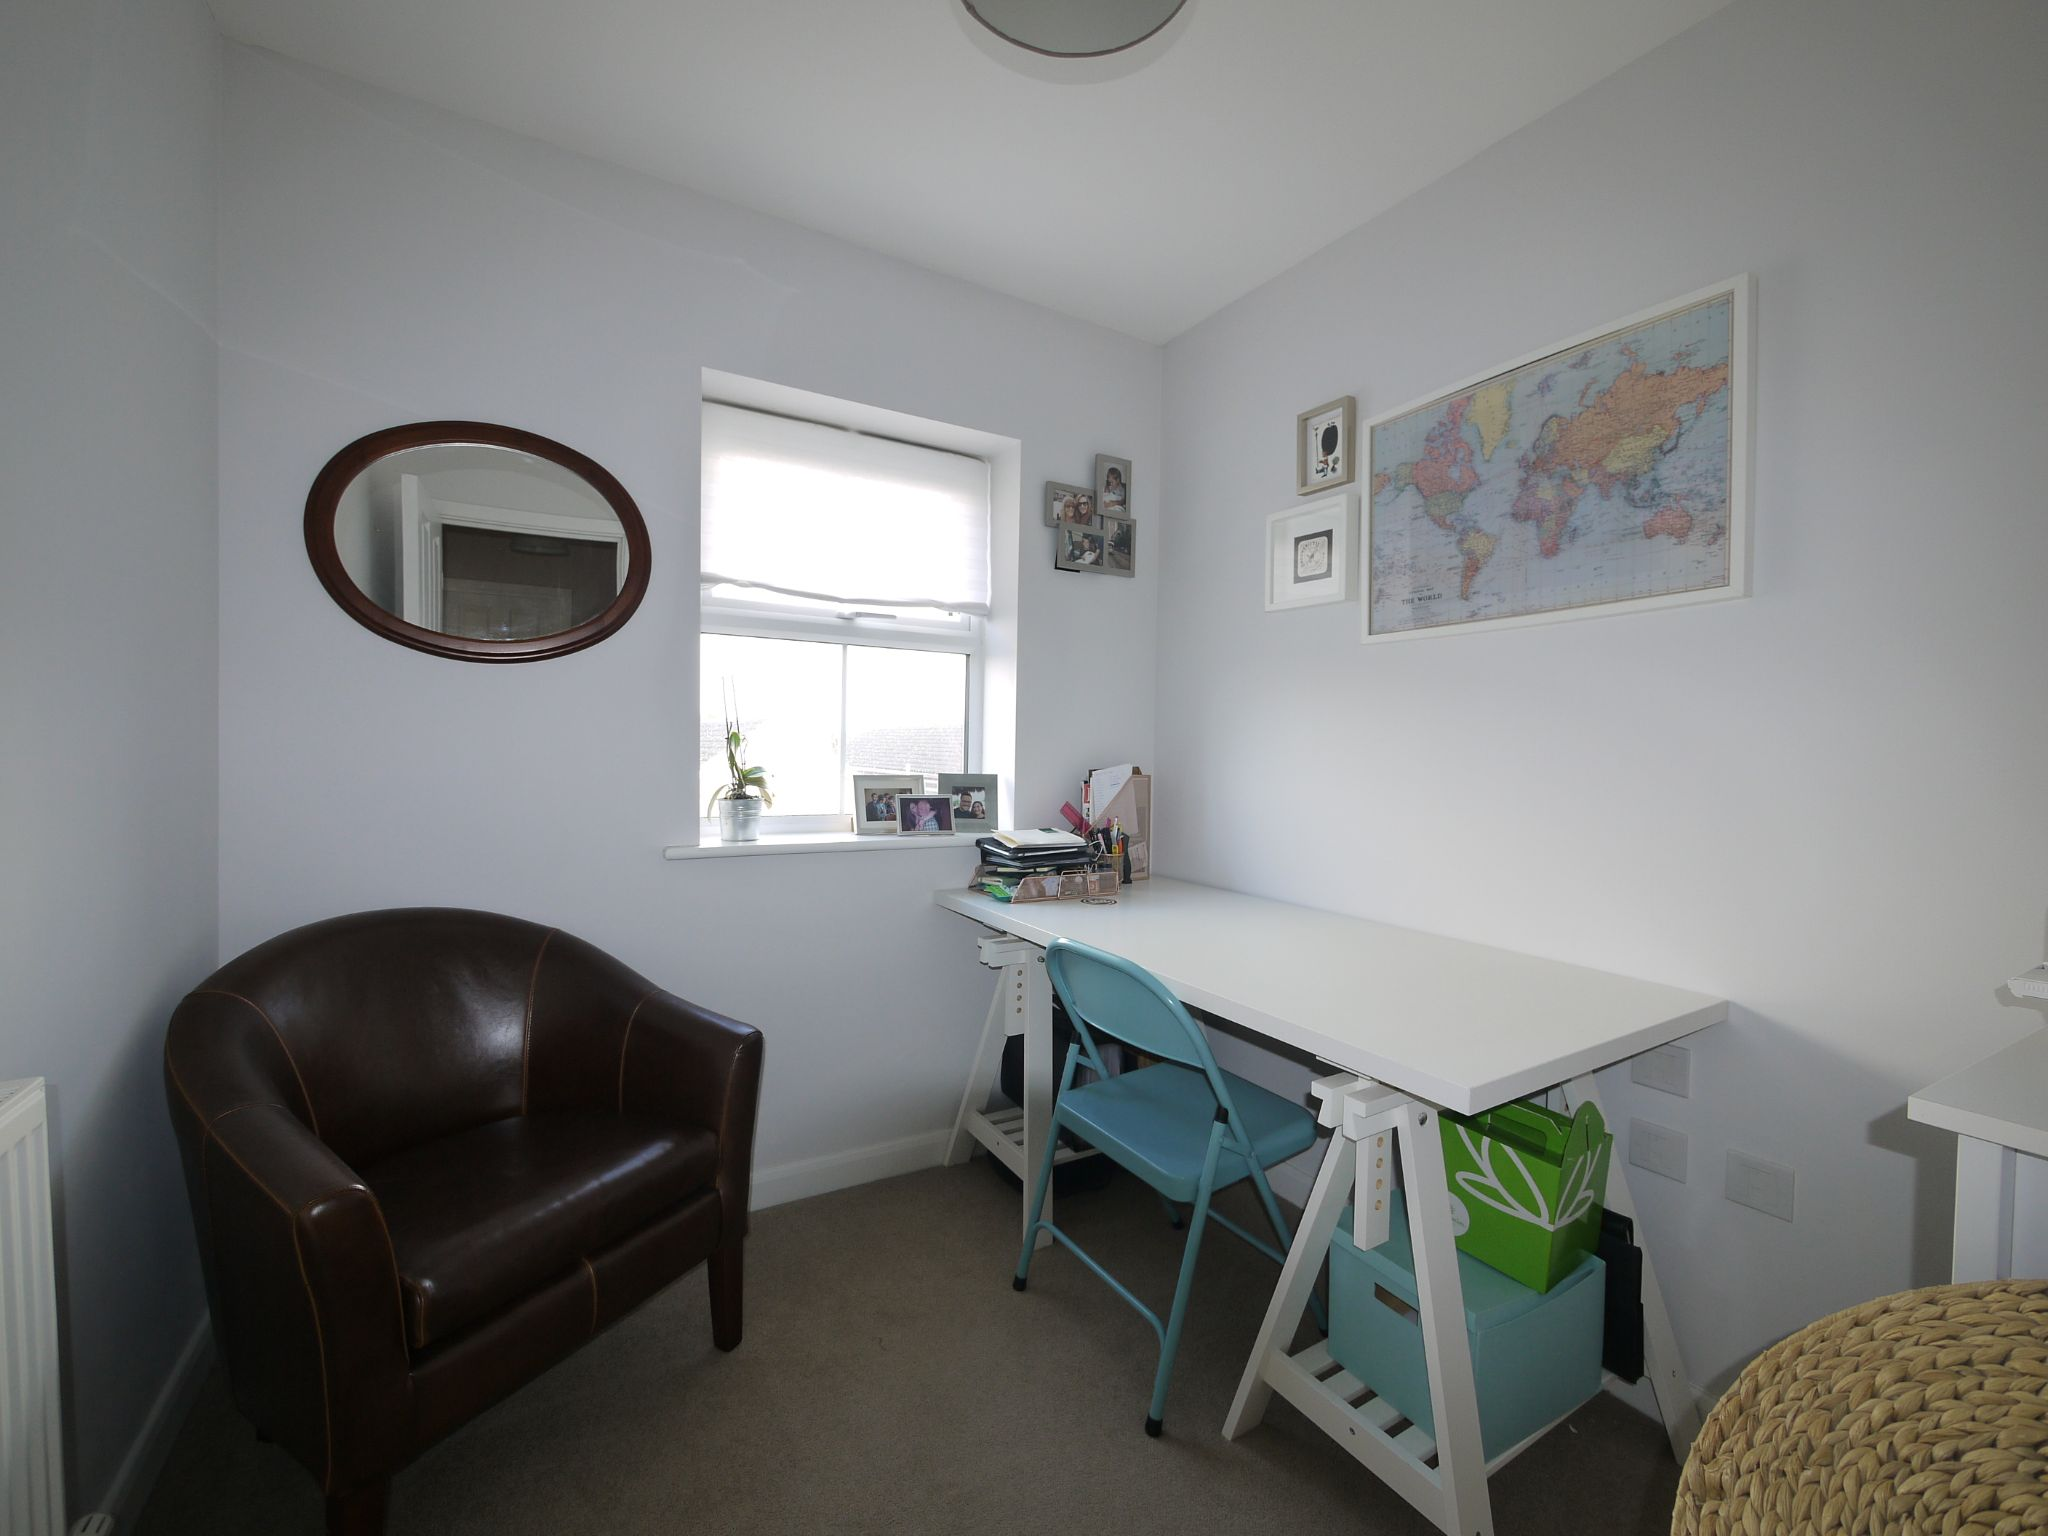 3 bedroom end terraced house SSTC in Cleckheaton - Bed 3.